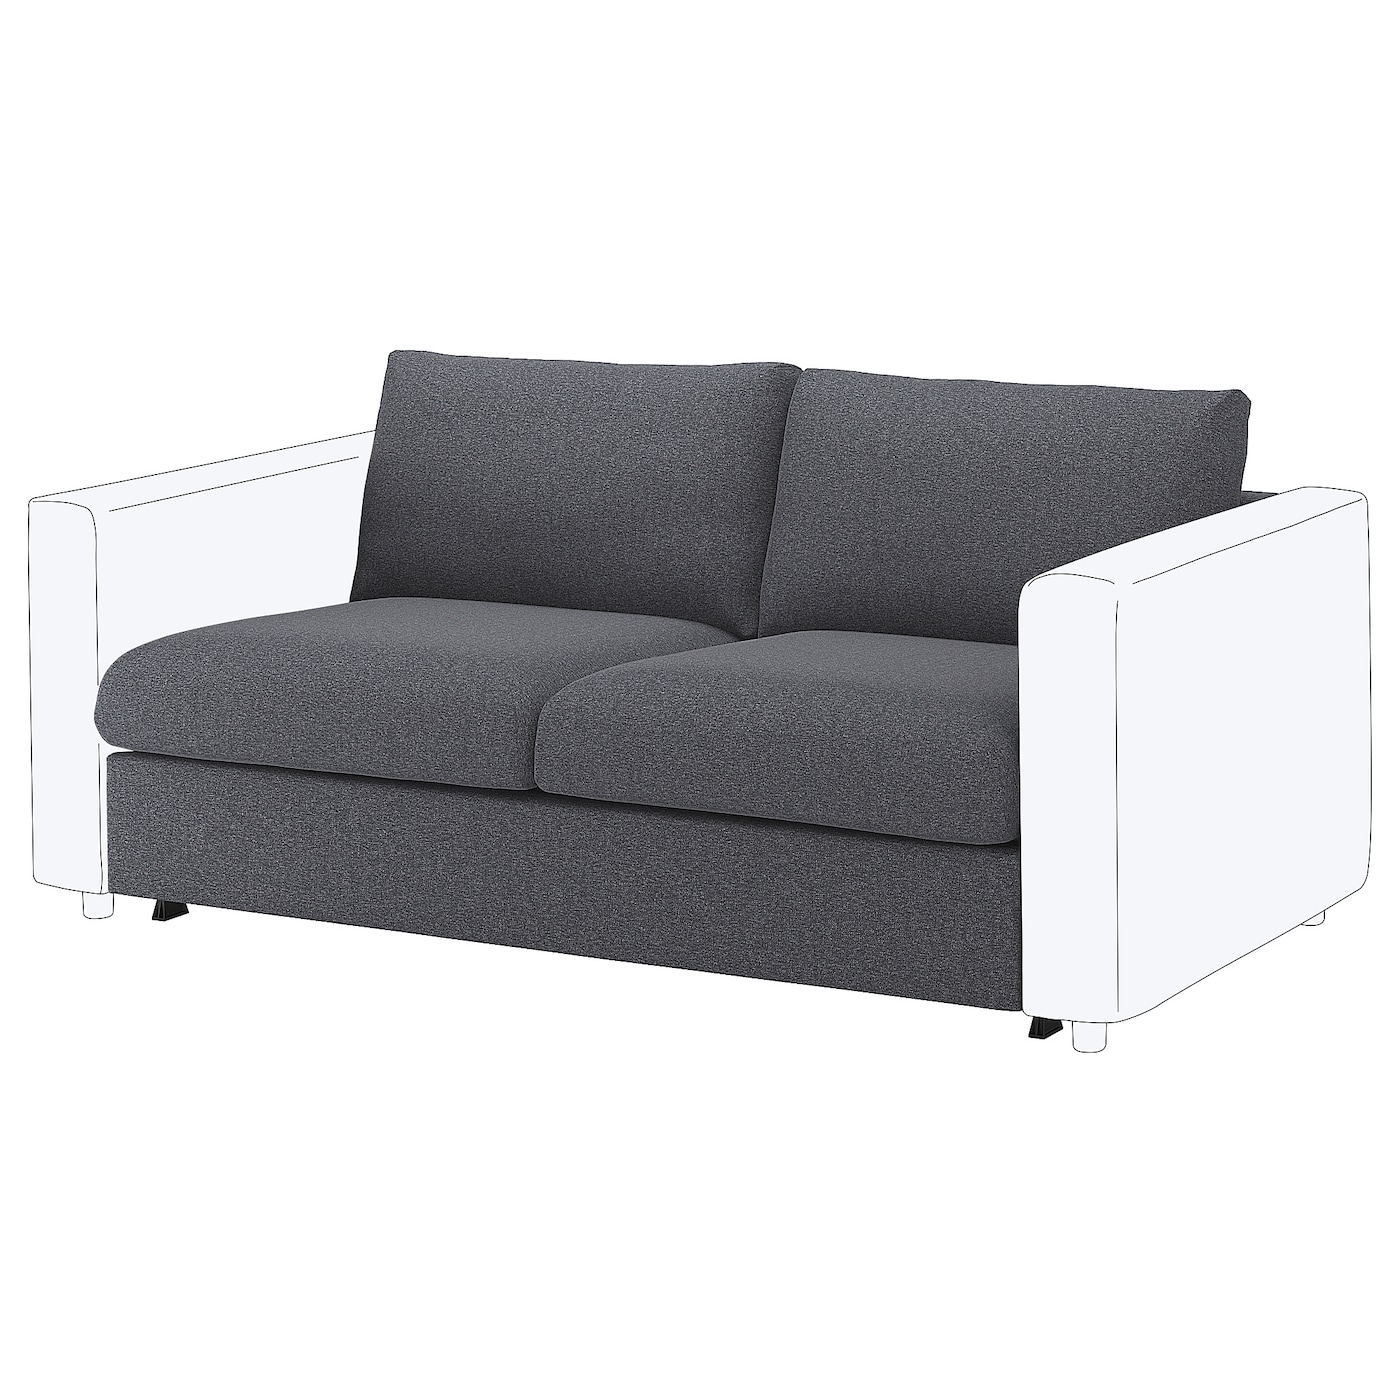 VIMLE 2-seat Sofa-bed Section Gunnared Medium Grey